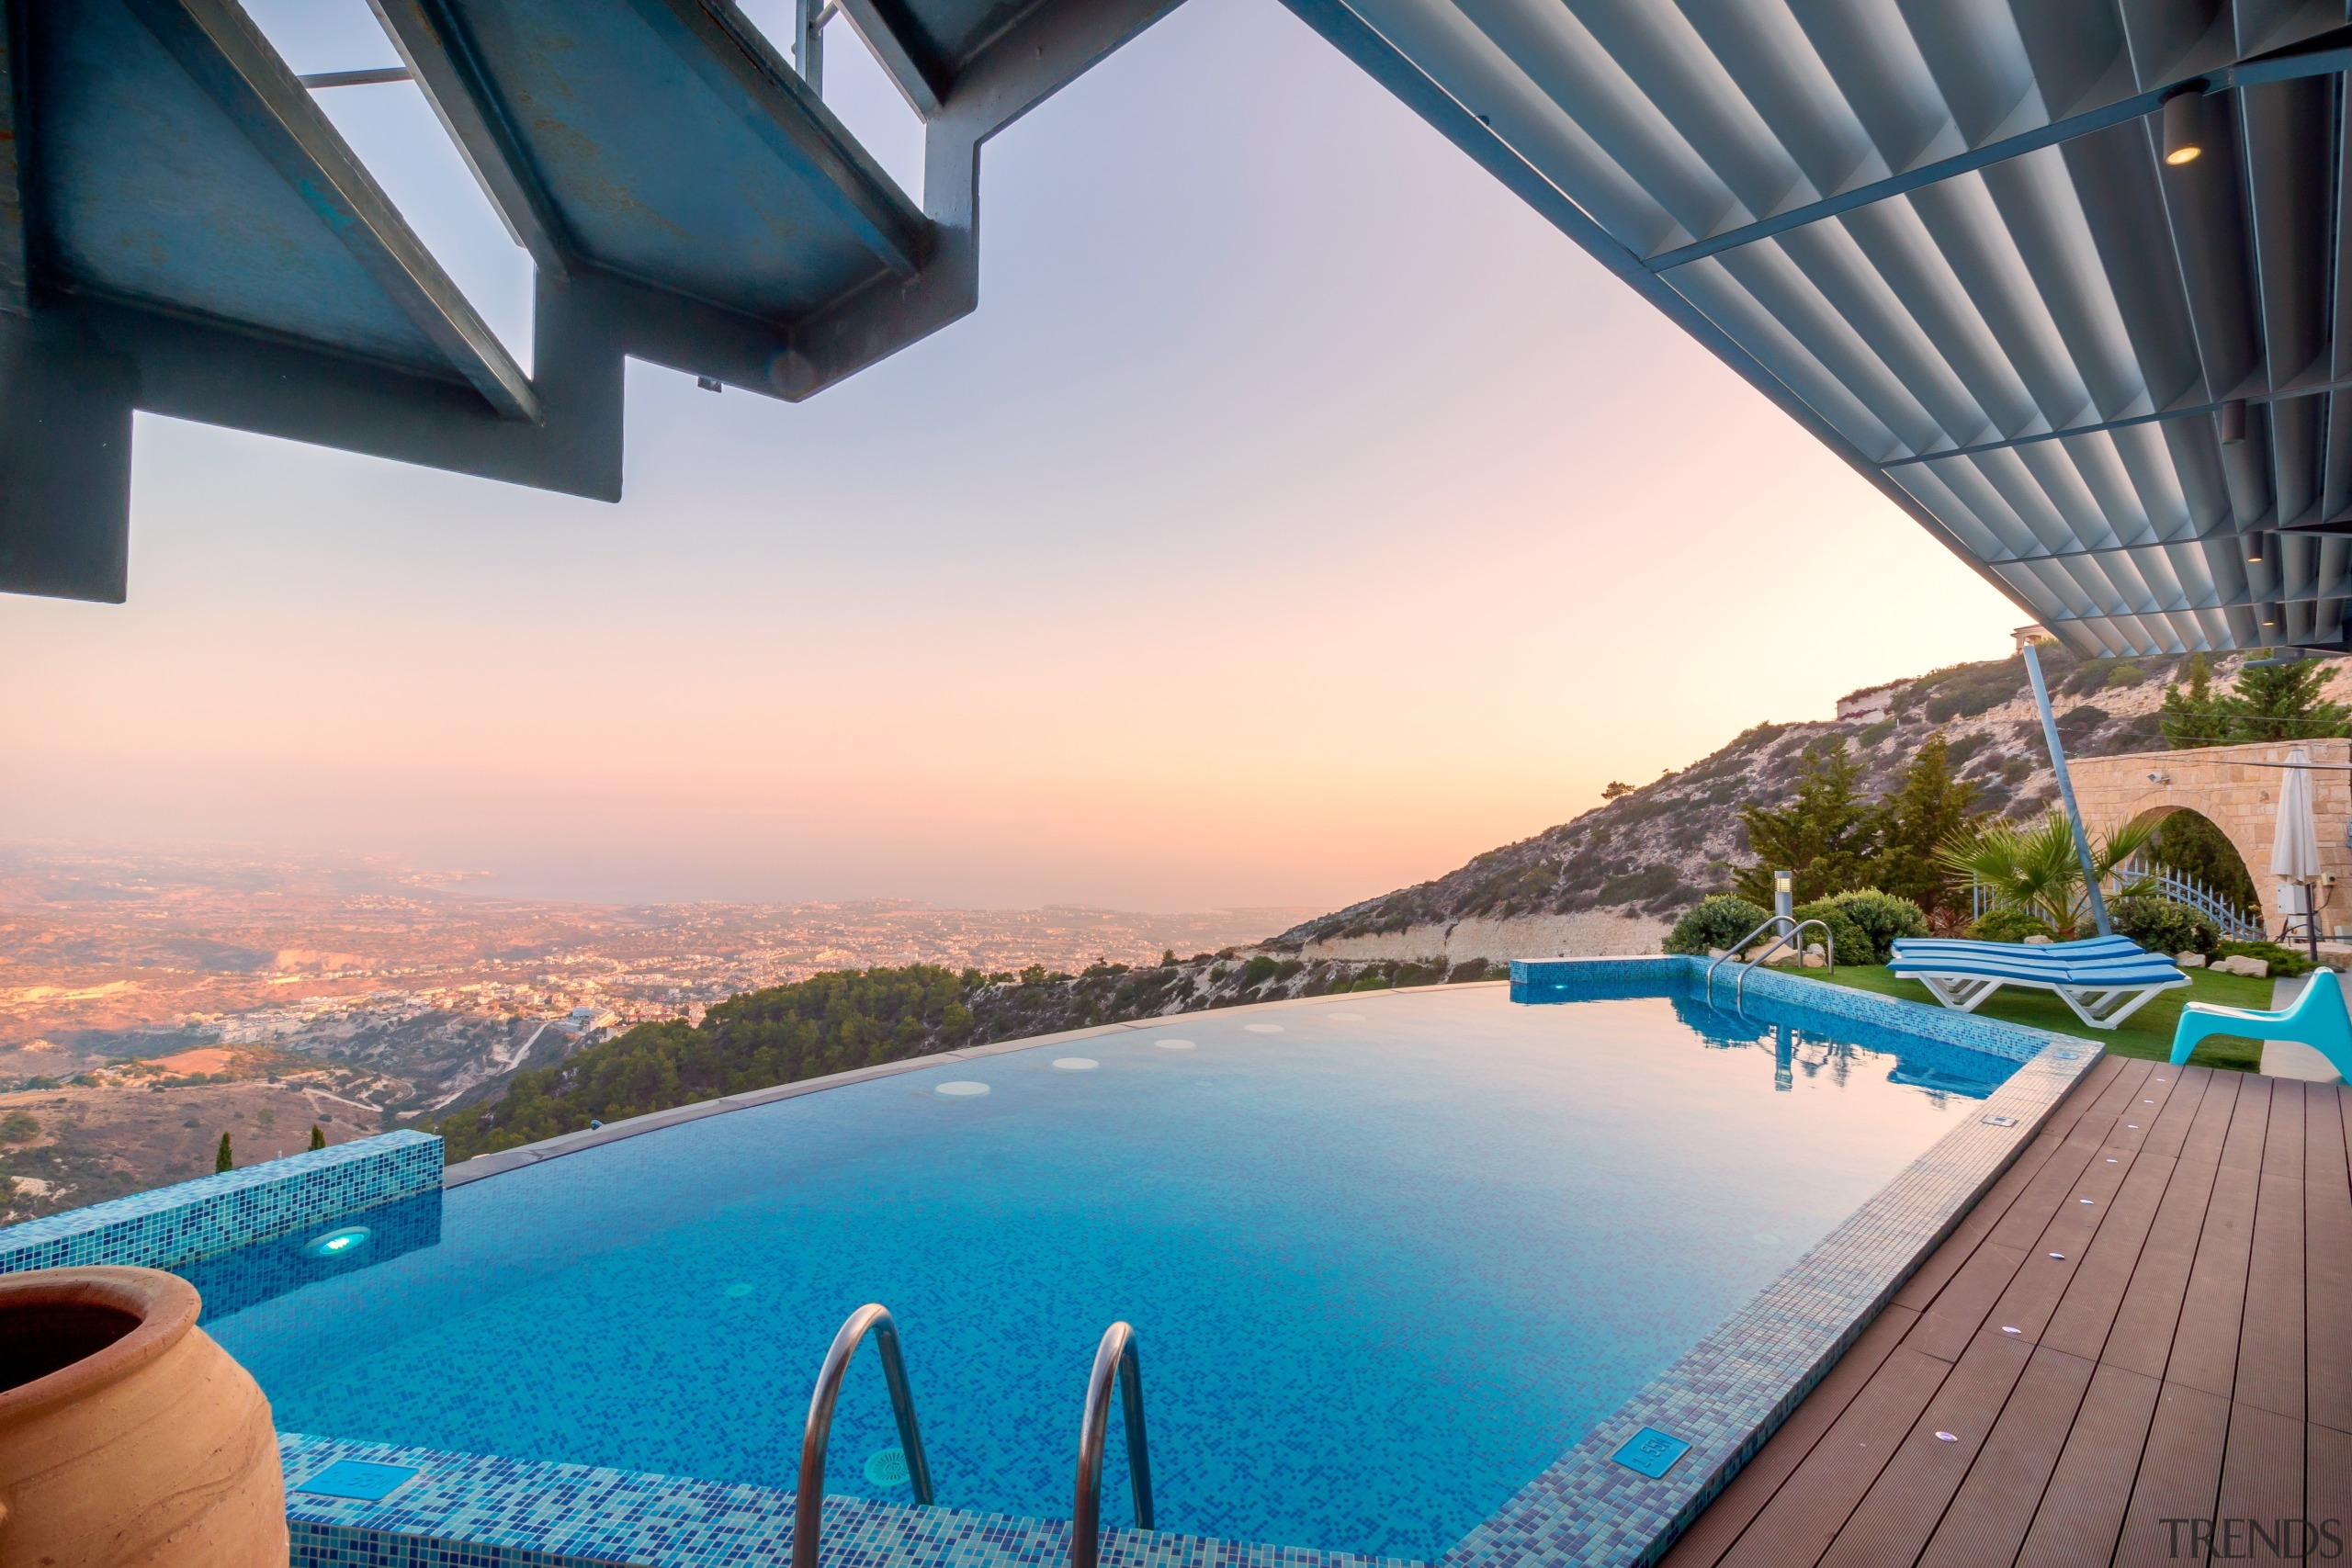 Another infinity pool with an unbeatable view - architecture, estate, leisure, property, real estate, reflection, resort, sea, sky, swimming pool, vacation, water, gray